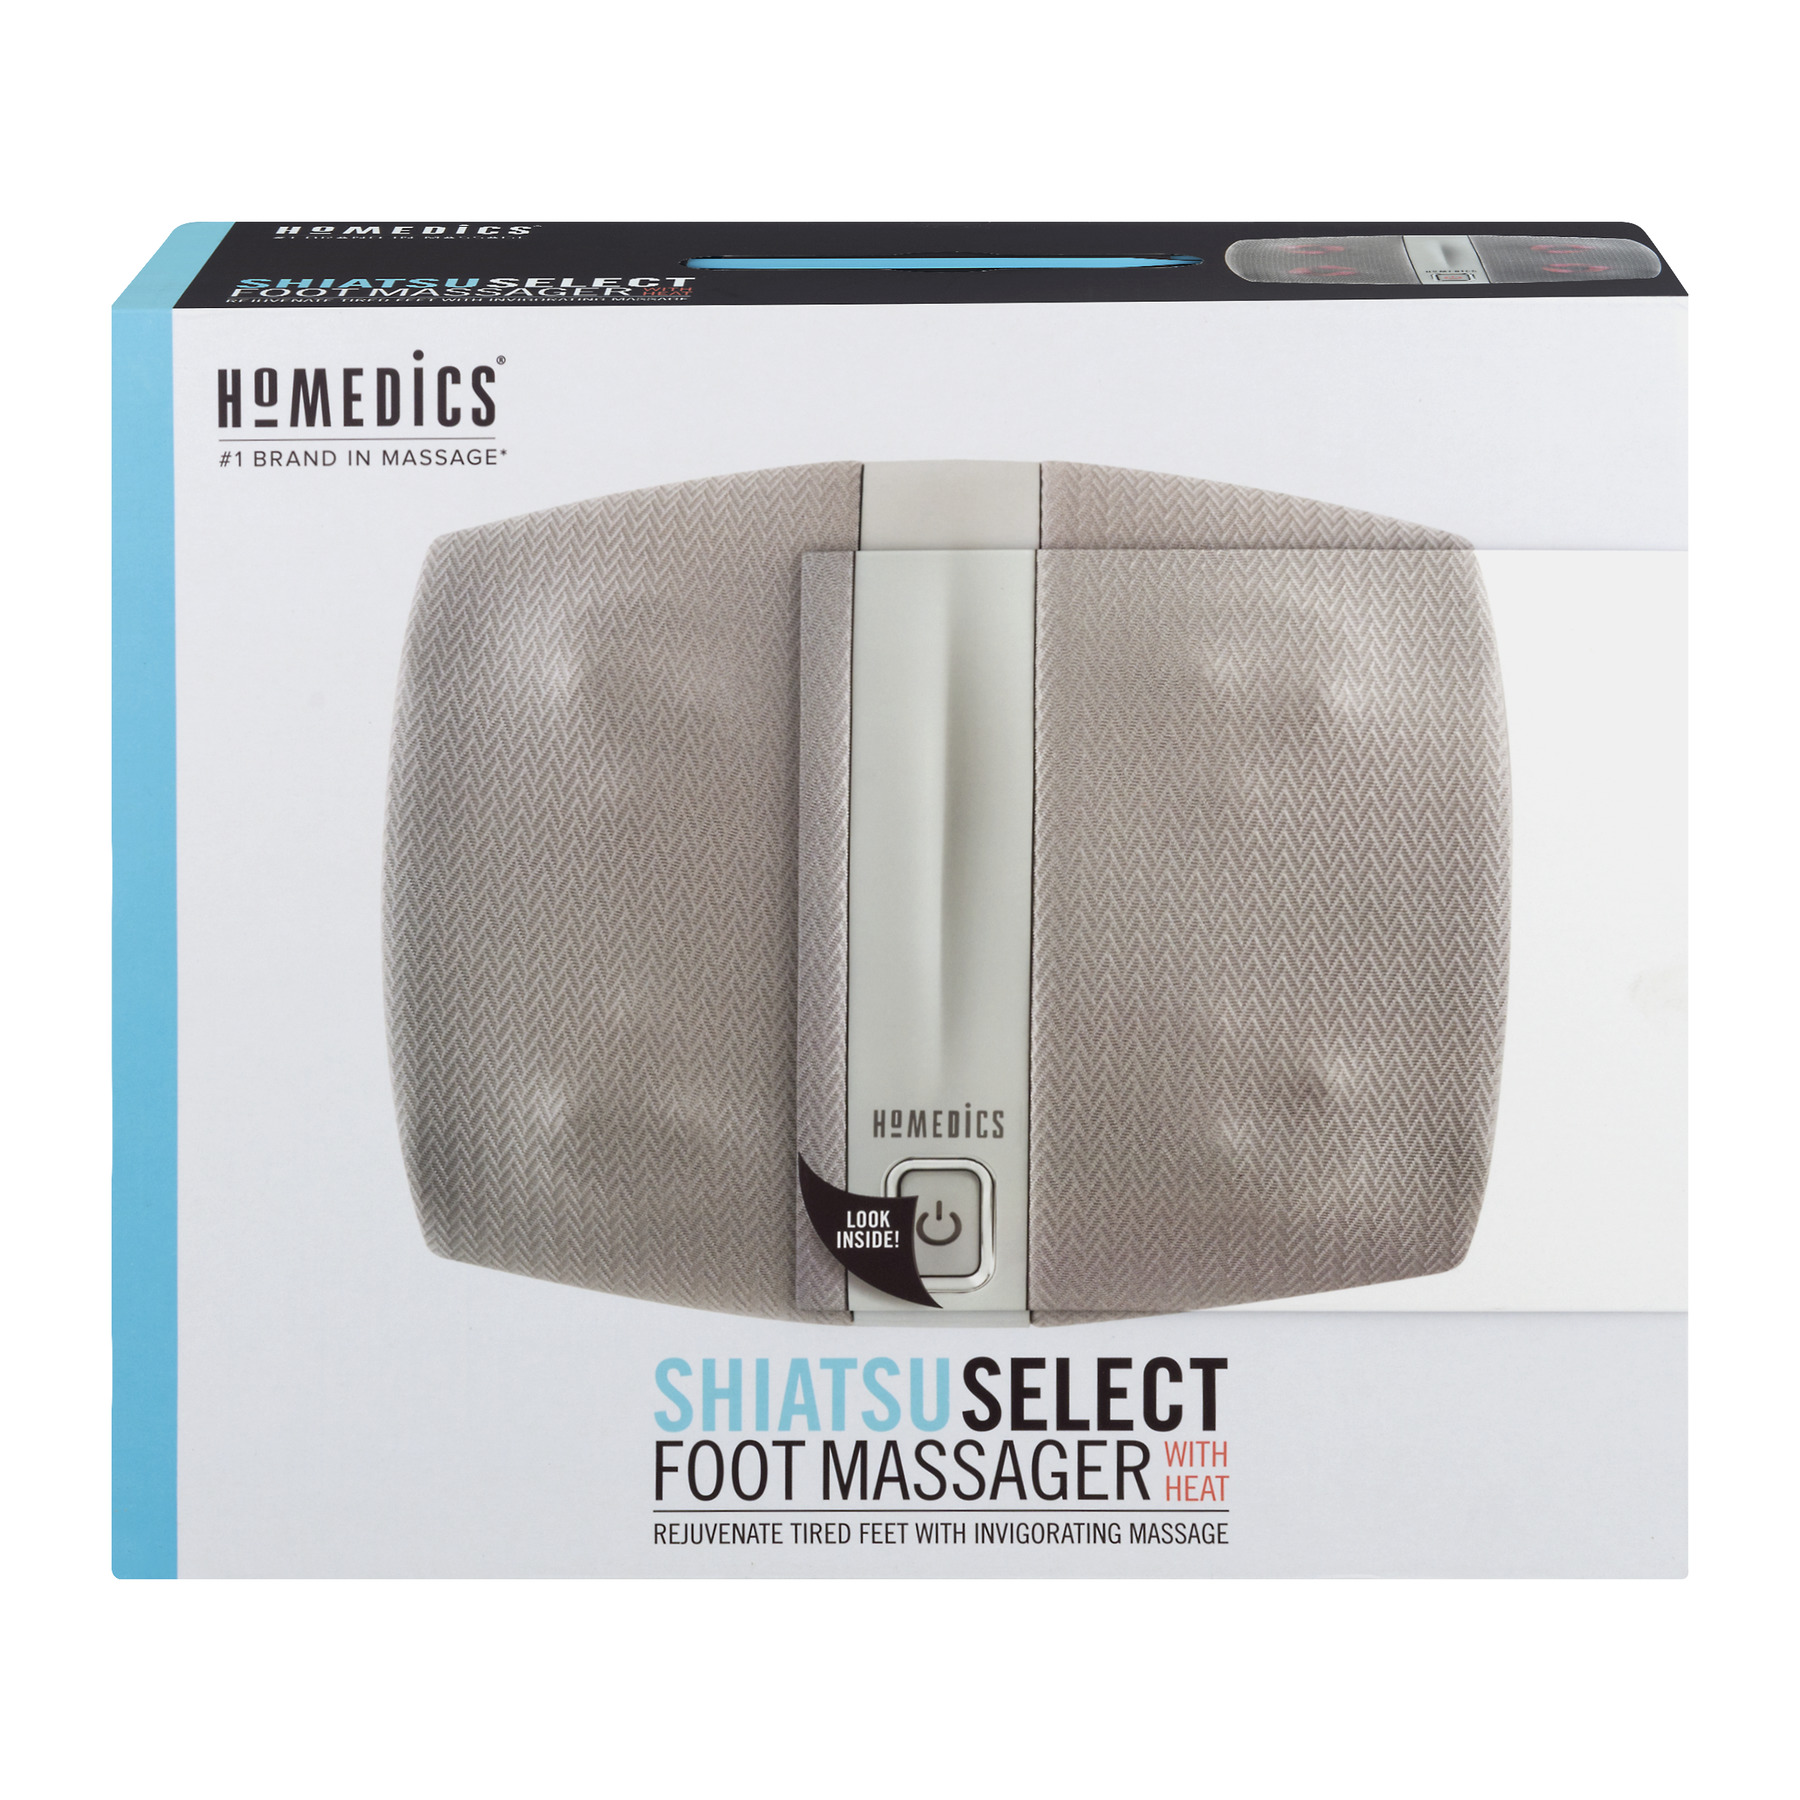 Homedics Shiatsu Select Foot Massager, 1.0 CT